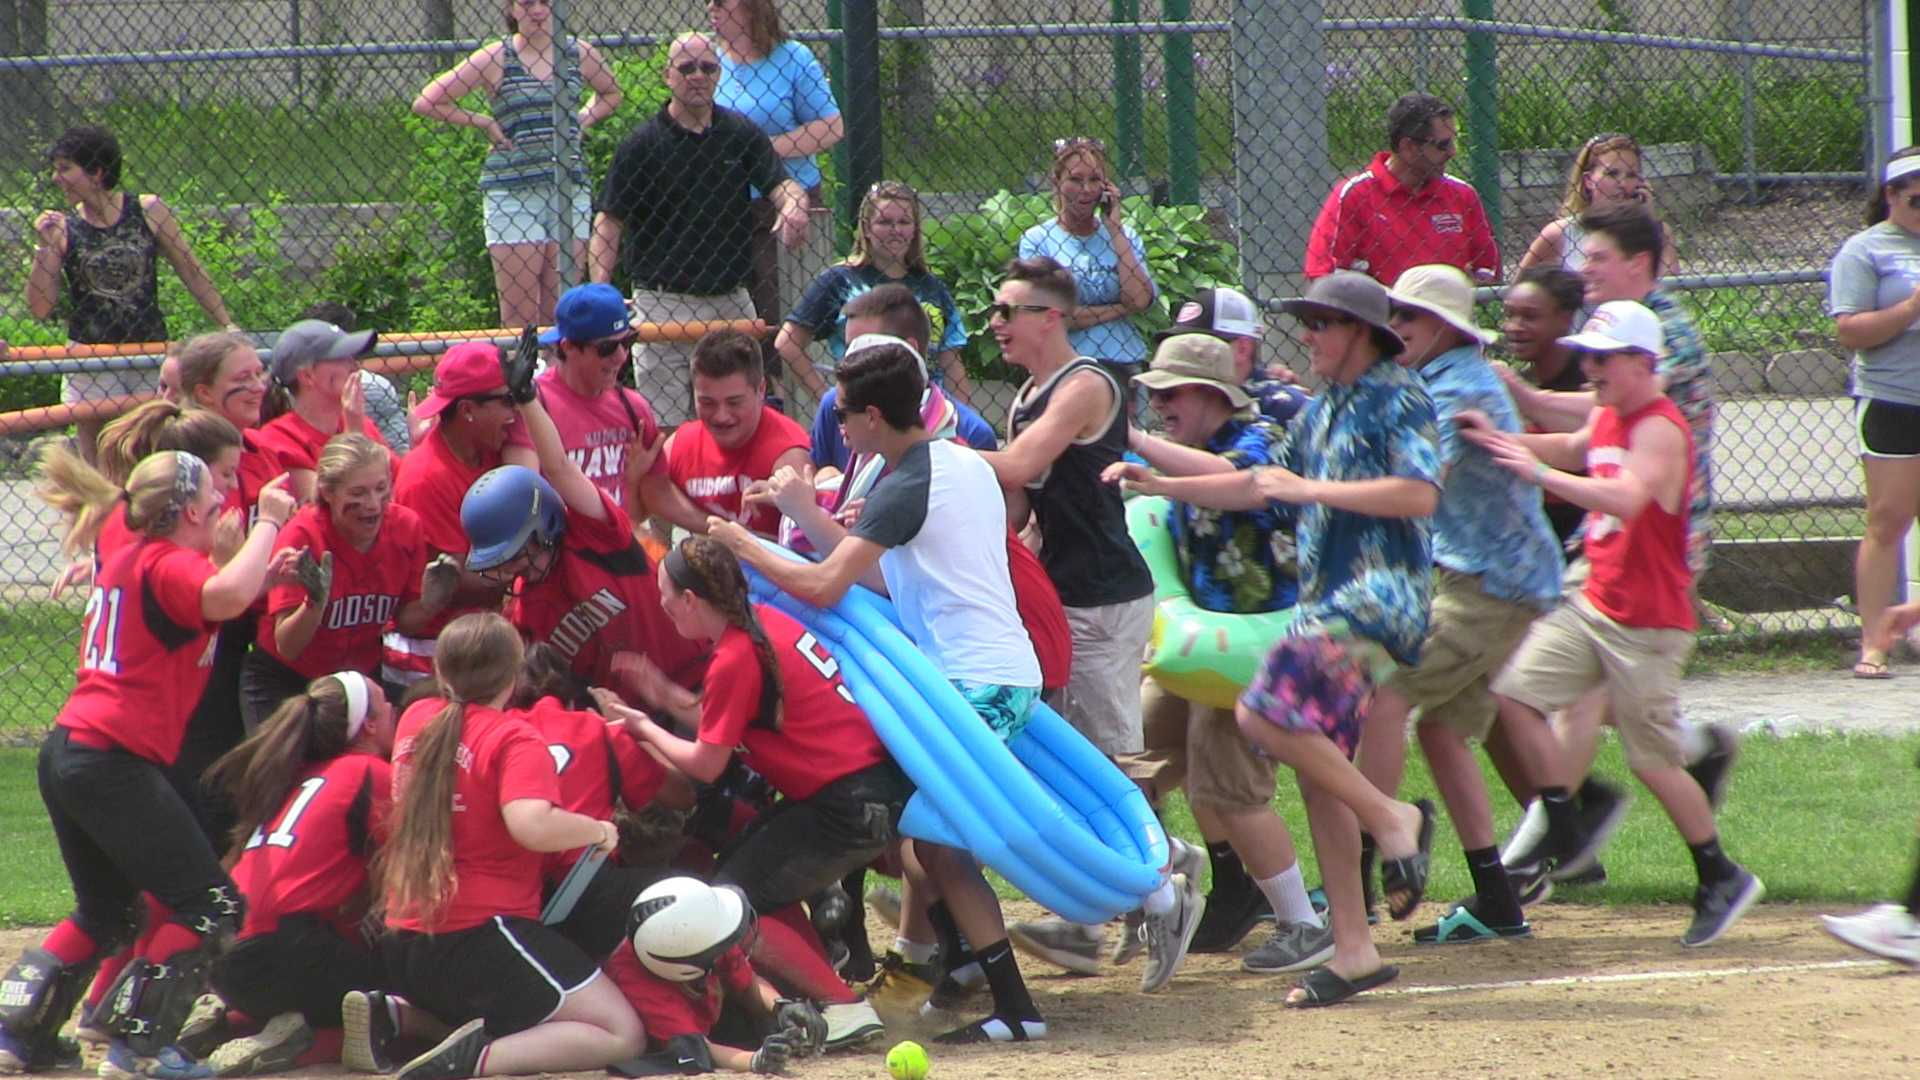 Softball Tops Holy Name on Walk-Off, Advances to Semifinals